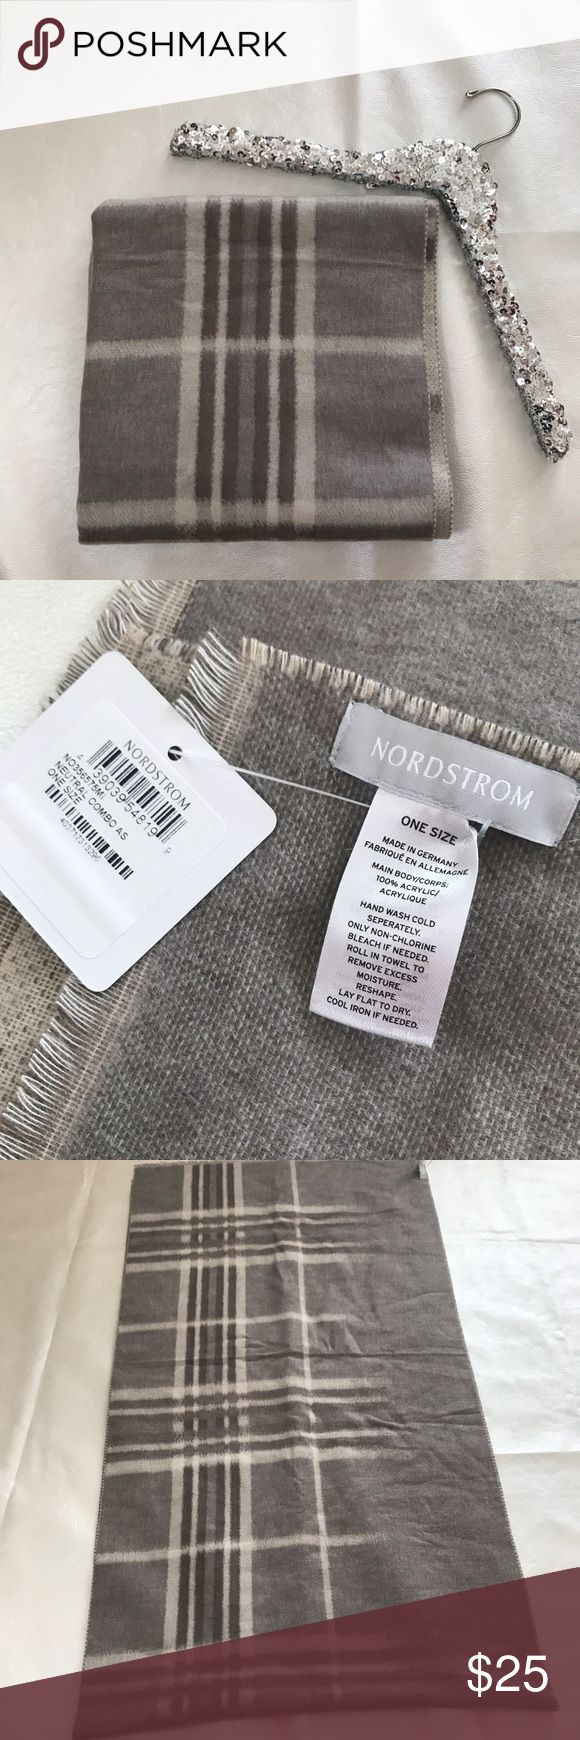 """Nordstrom Checked Plaid Scarf Taupe scarf. Long and oversized. Not a full size """"blanket scarf"""" more like half that. NWT. Matches almost anything! Nordstrom Accessories Scarves & Wraps"""